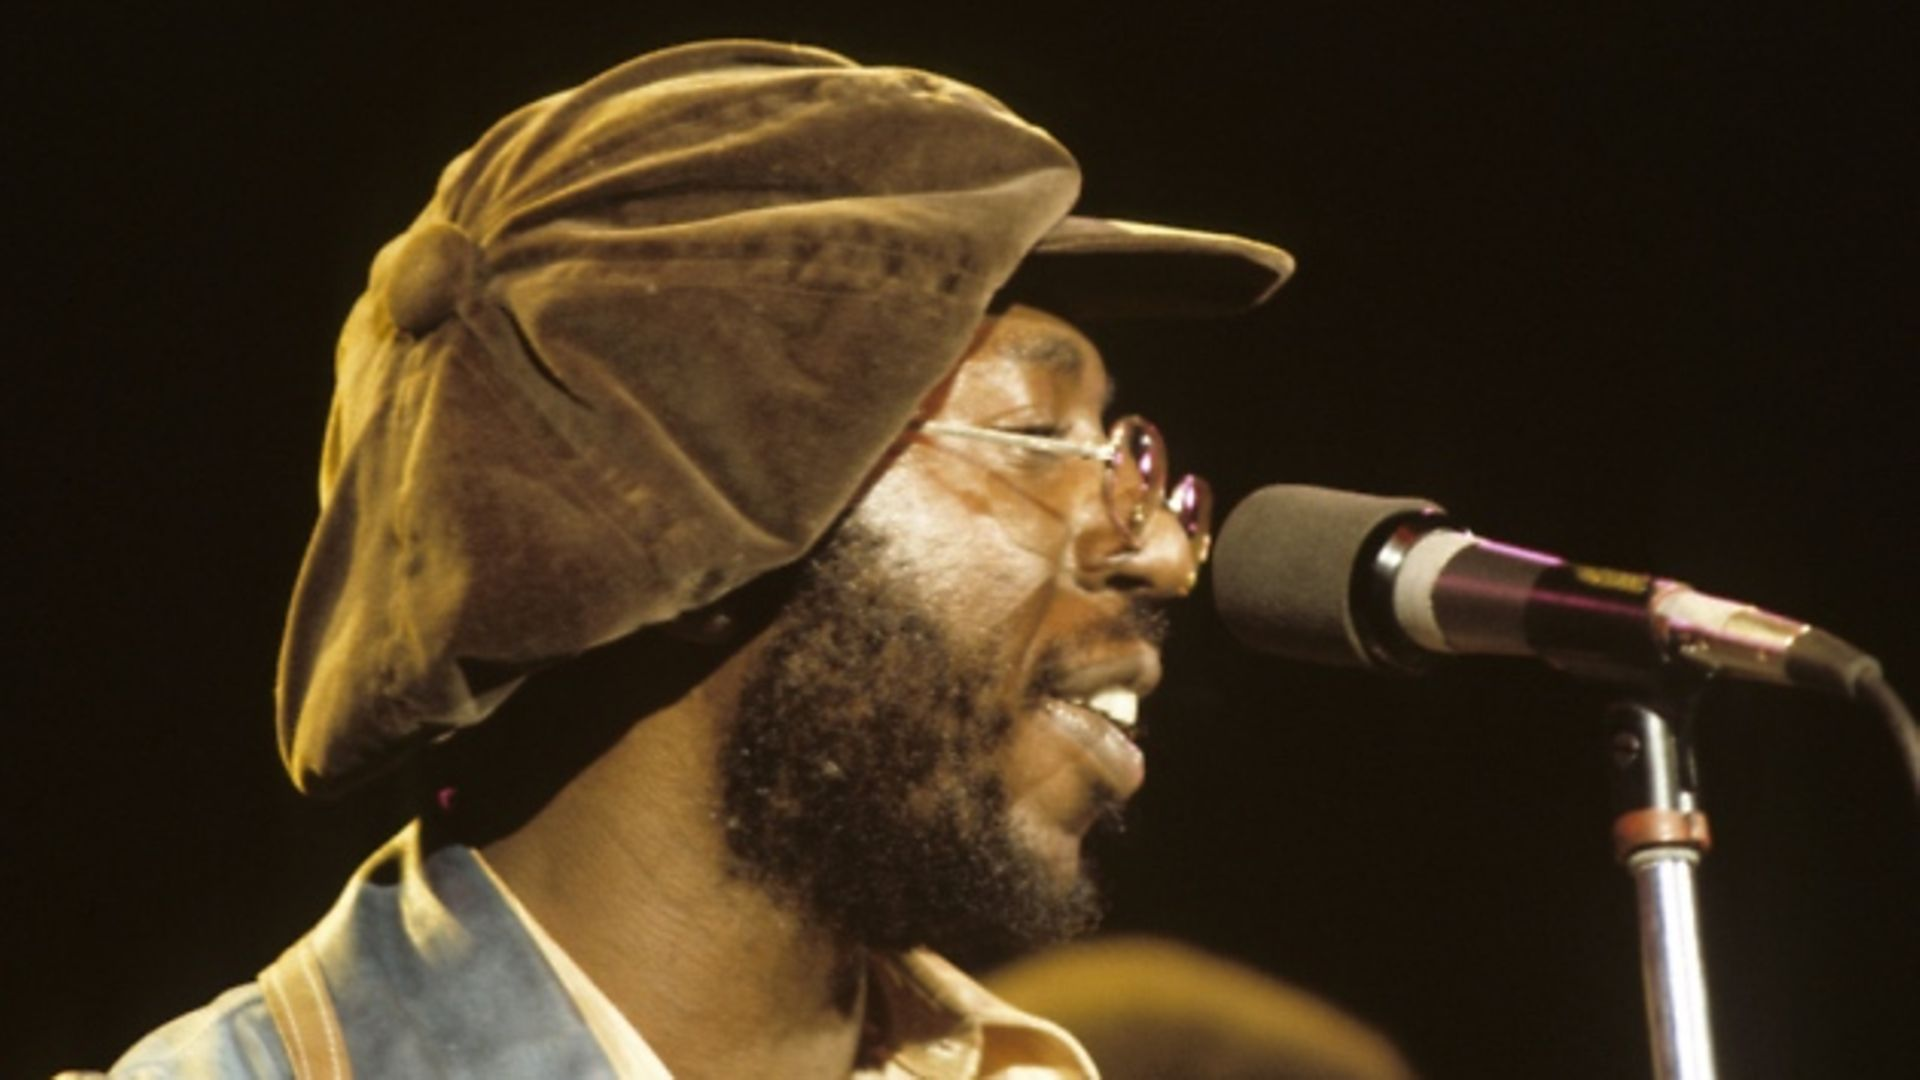 Curtis Mayfield in concert: November 1, 1972. (Photo by Walt Disney Television via Getty Images Photo Archives/Walt Disney Television via Getty Images) - Credit: Walt Disney Television via Getty Images